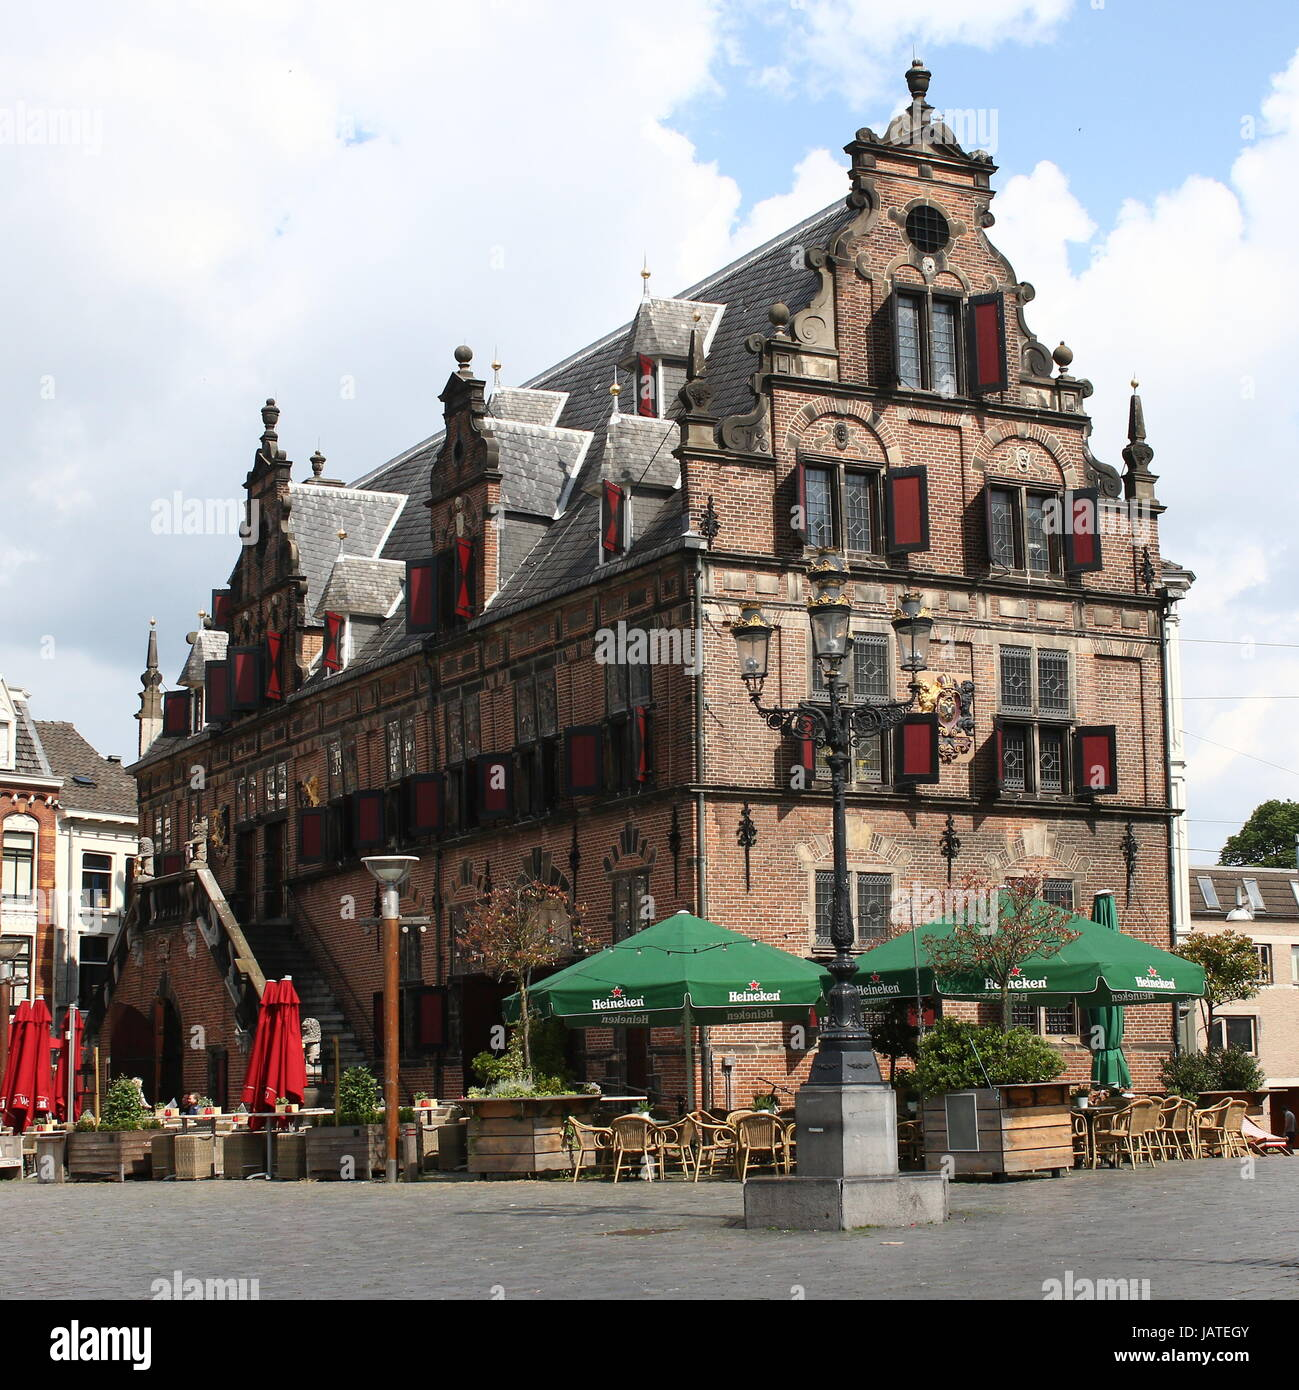 Grote Markt square, centre of Nijmegen, Netherlands with early 17th century Boterwaag (Butter Weighing House). - Stock Image